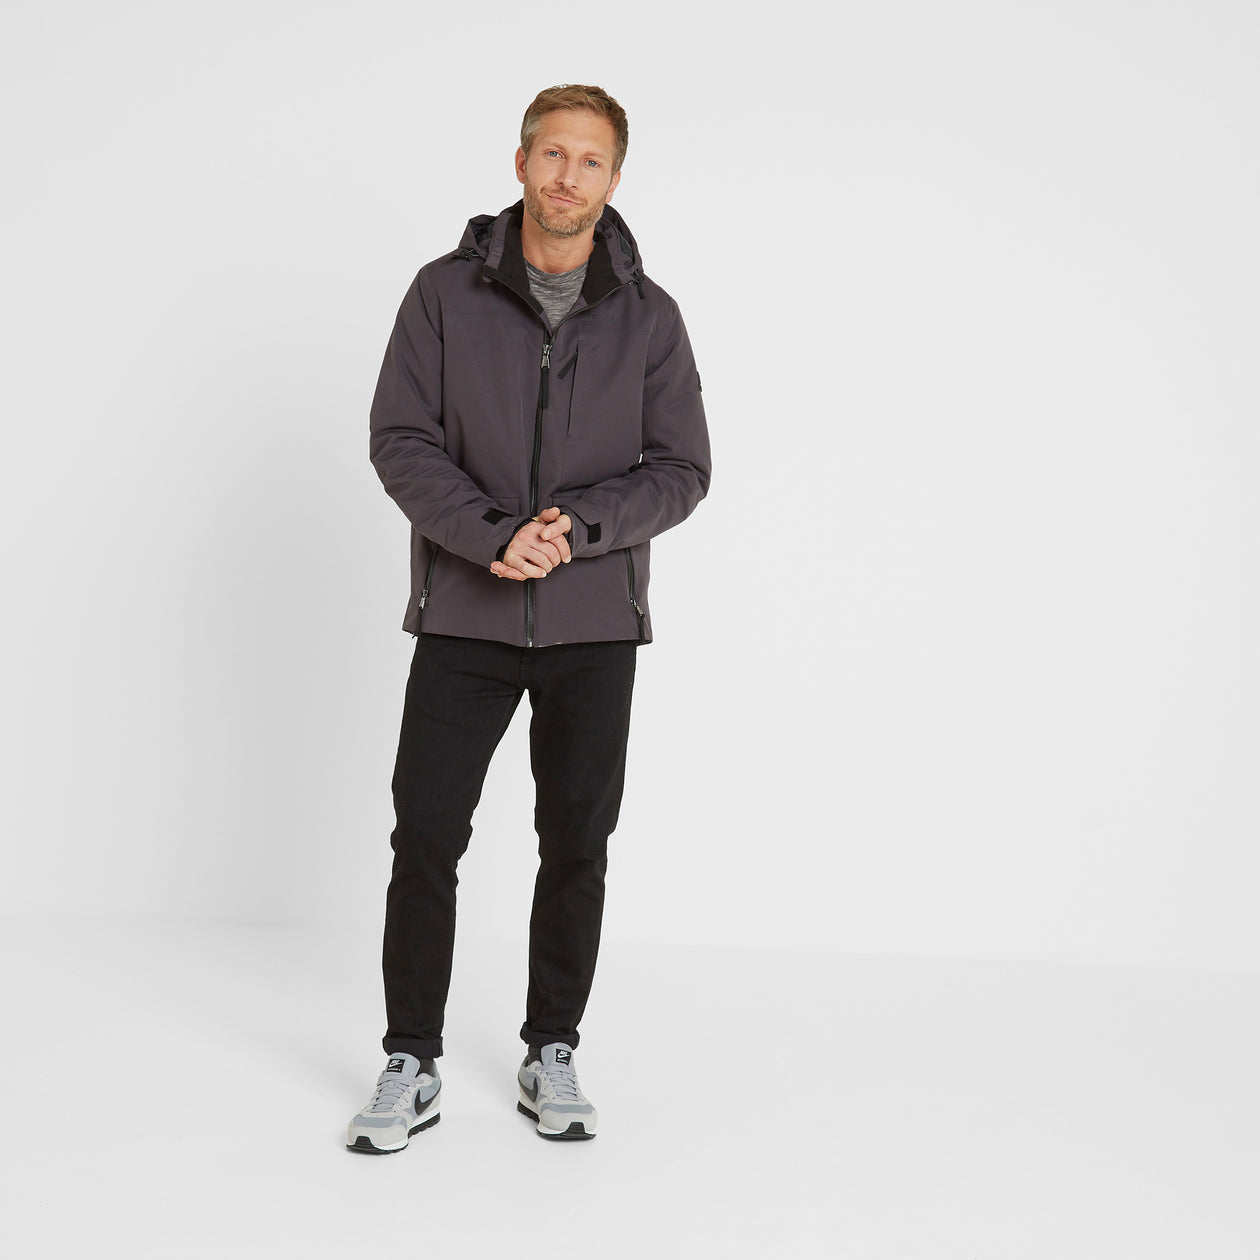 Helmsley Mens Winter Jacket - Coal Grey image 4